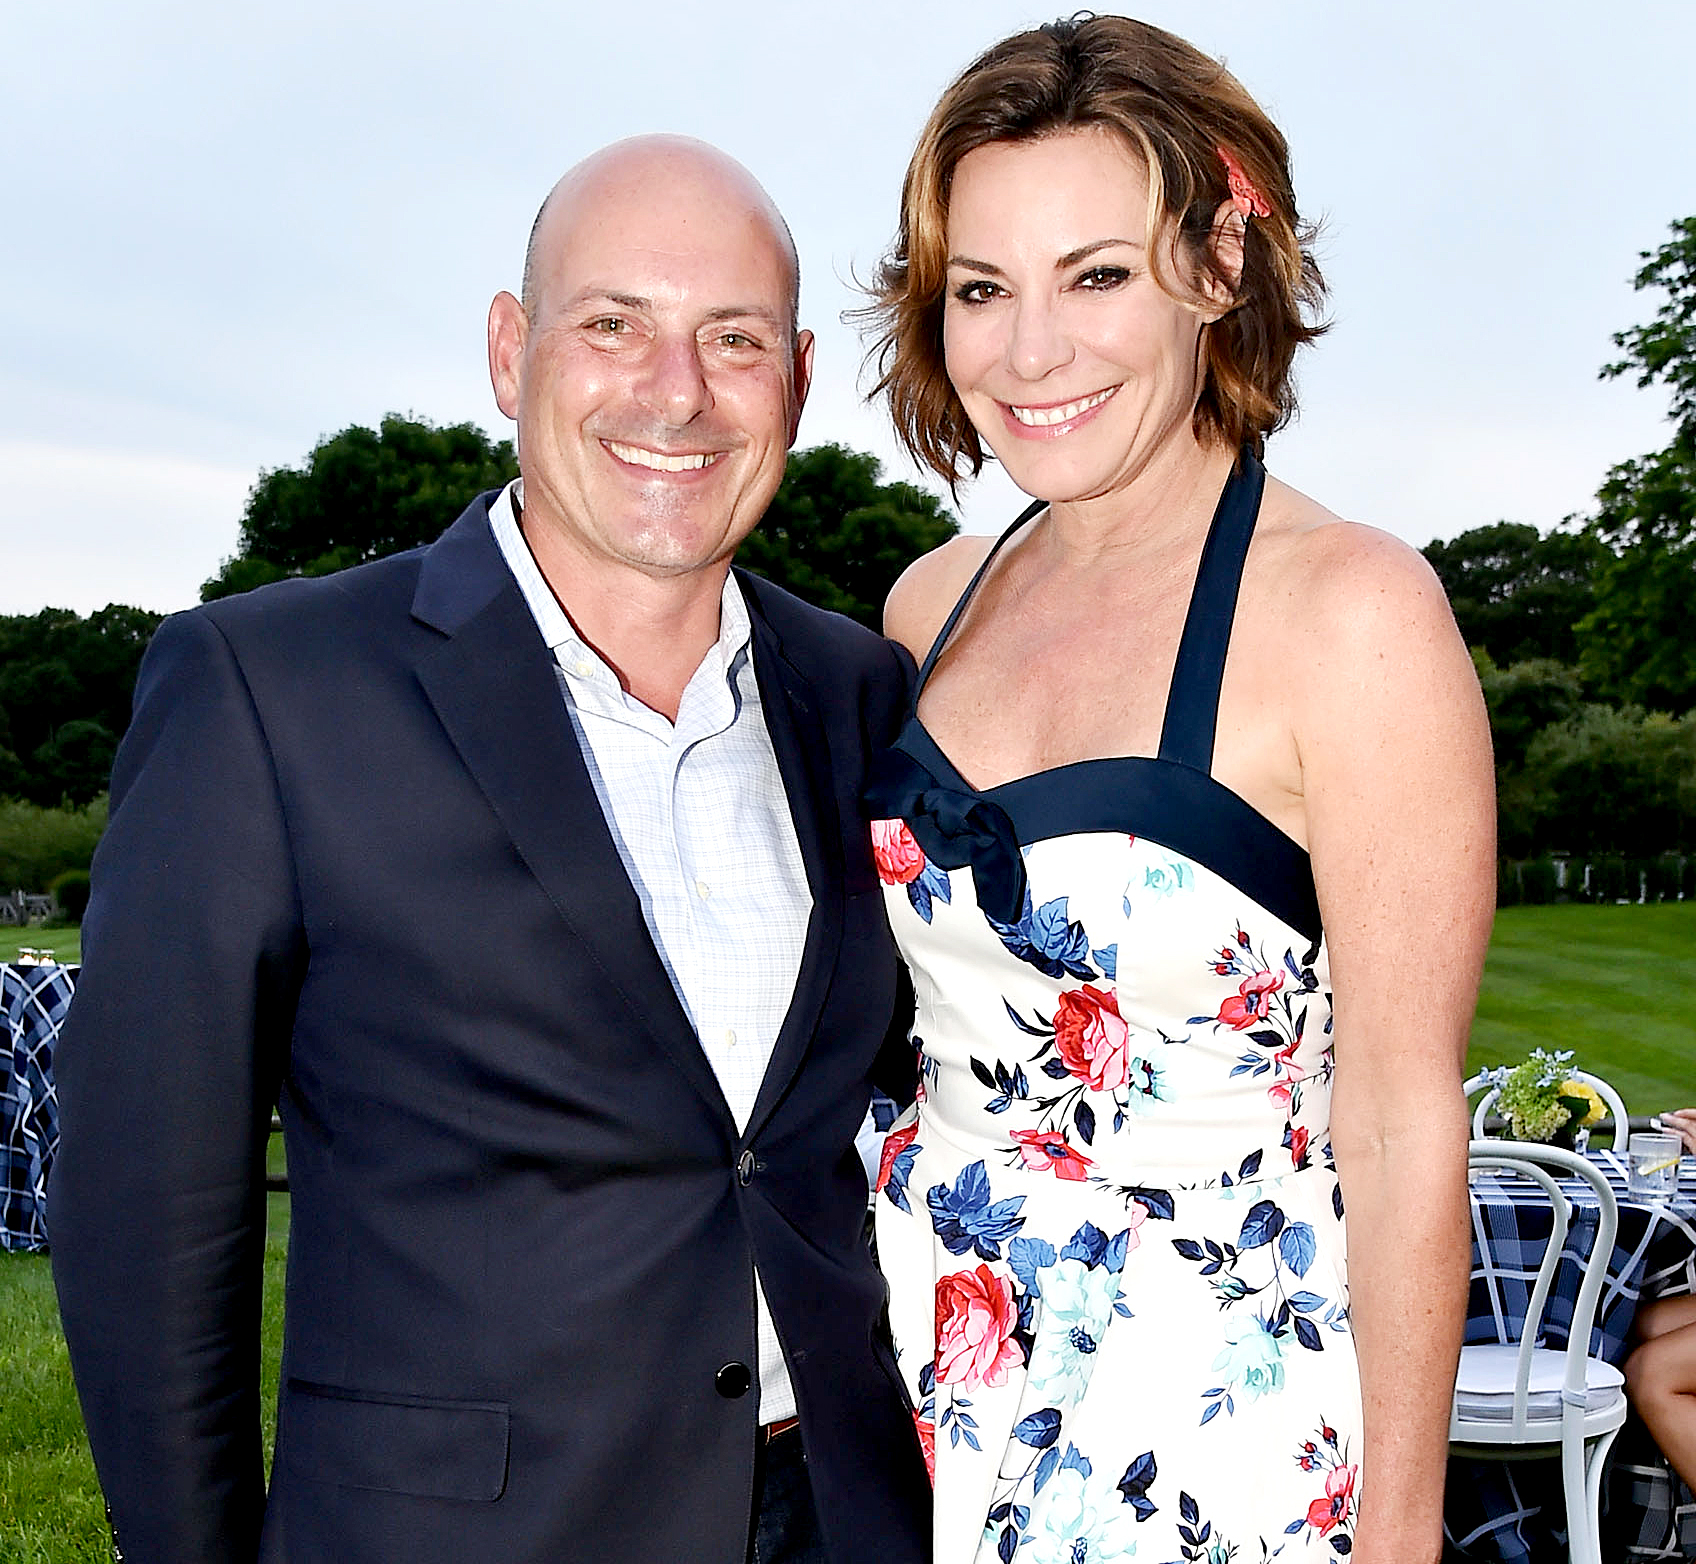 Luann de Lesseps arrest to be covered in season 10